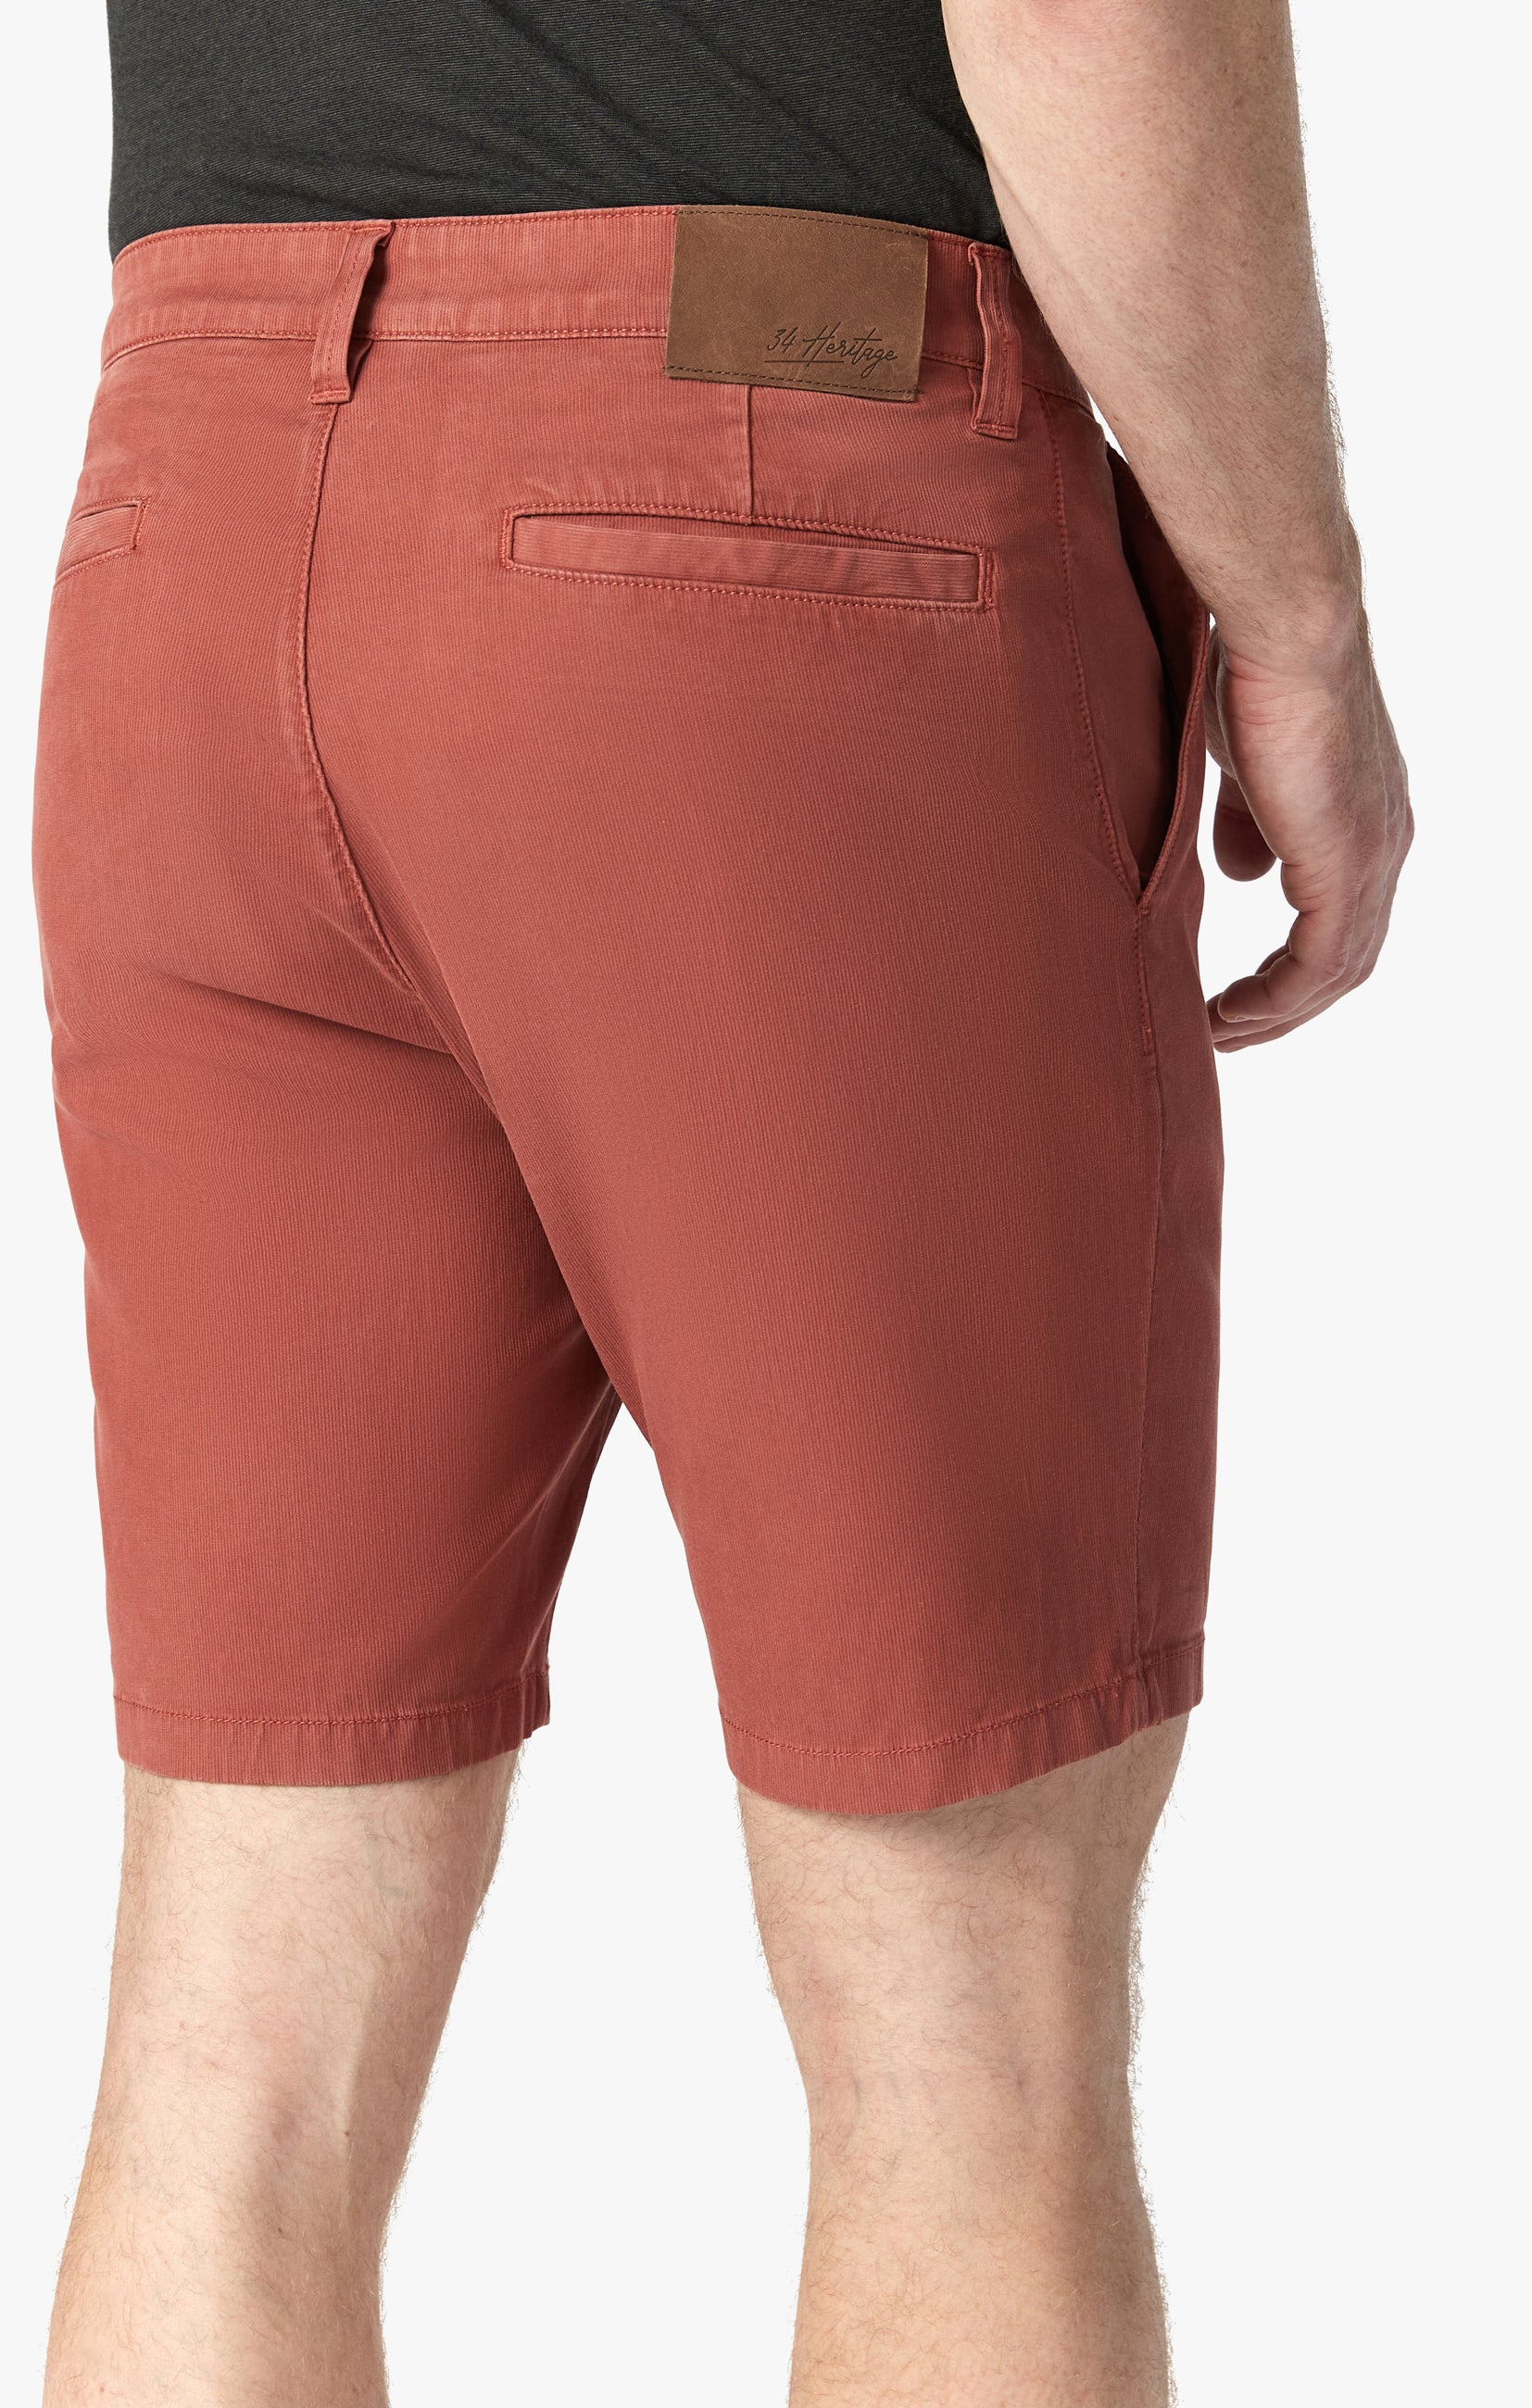 Arizona Shorts in Brick Fine Touch Image 5